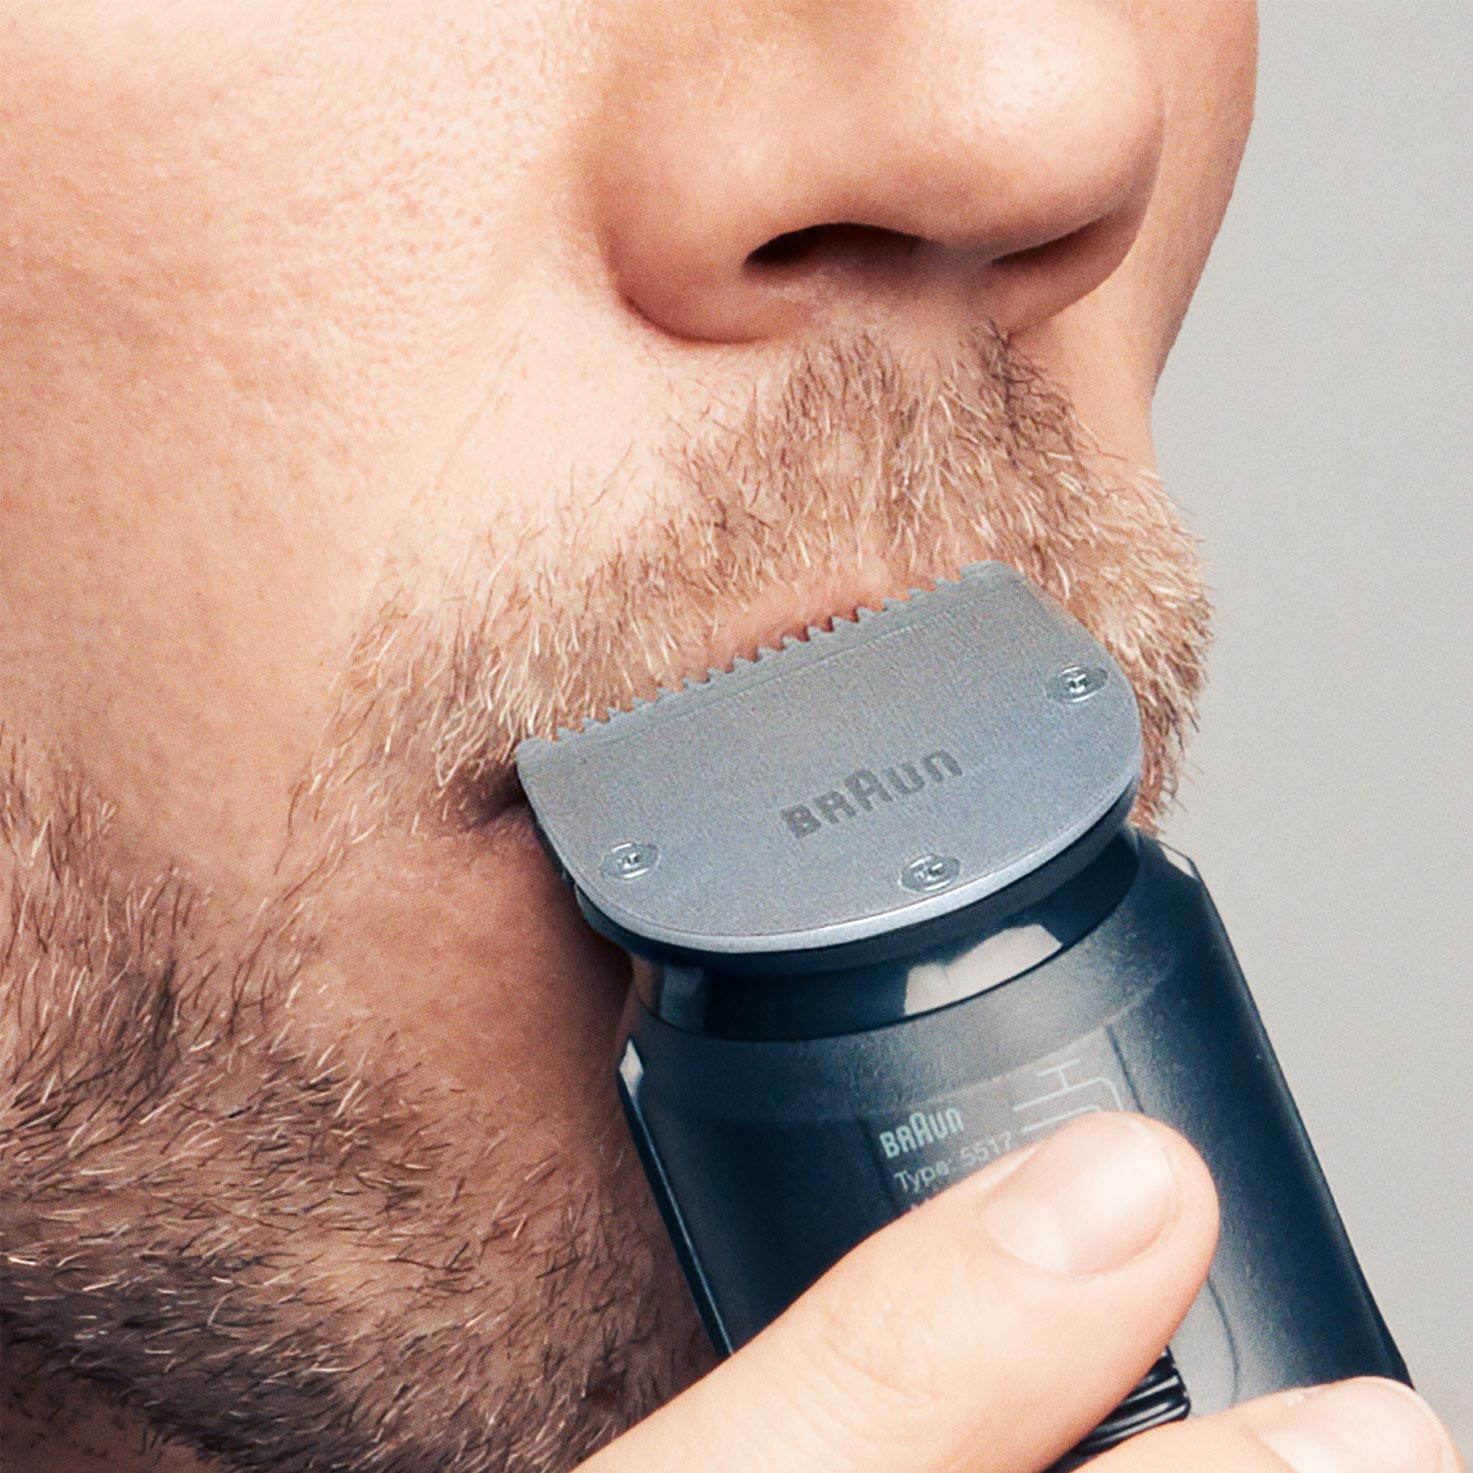 Braun BeardTrimmer BT7020 - In use